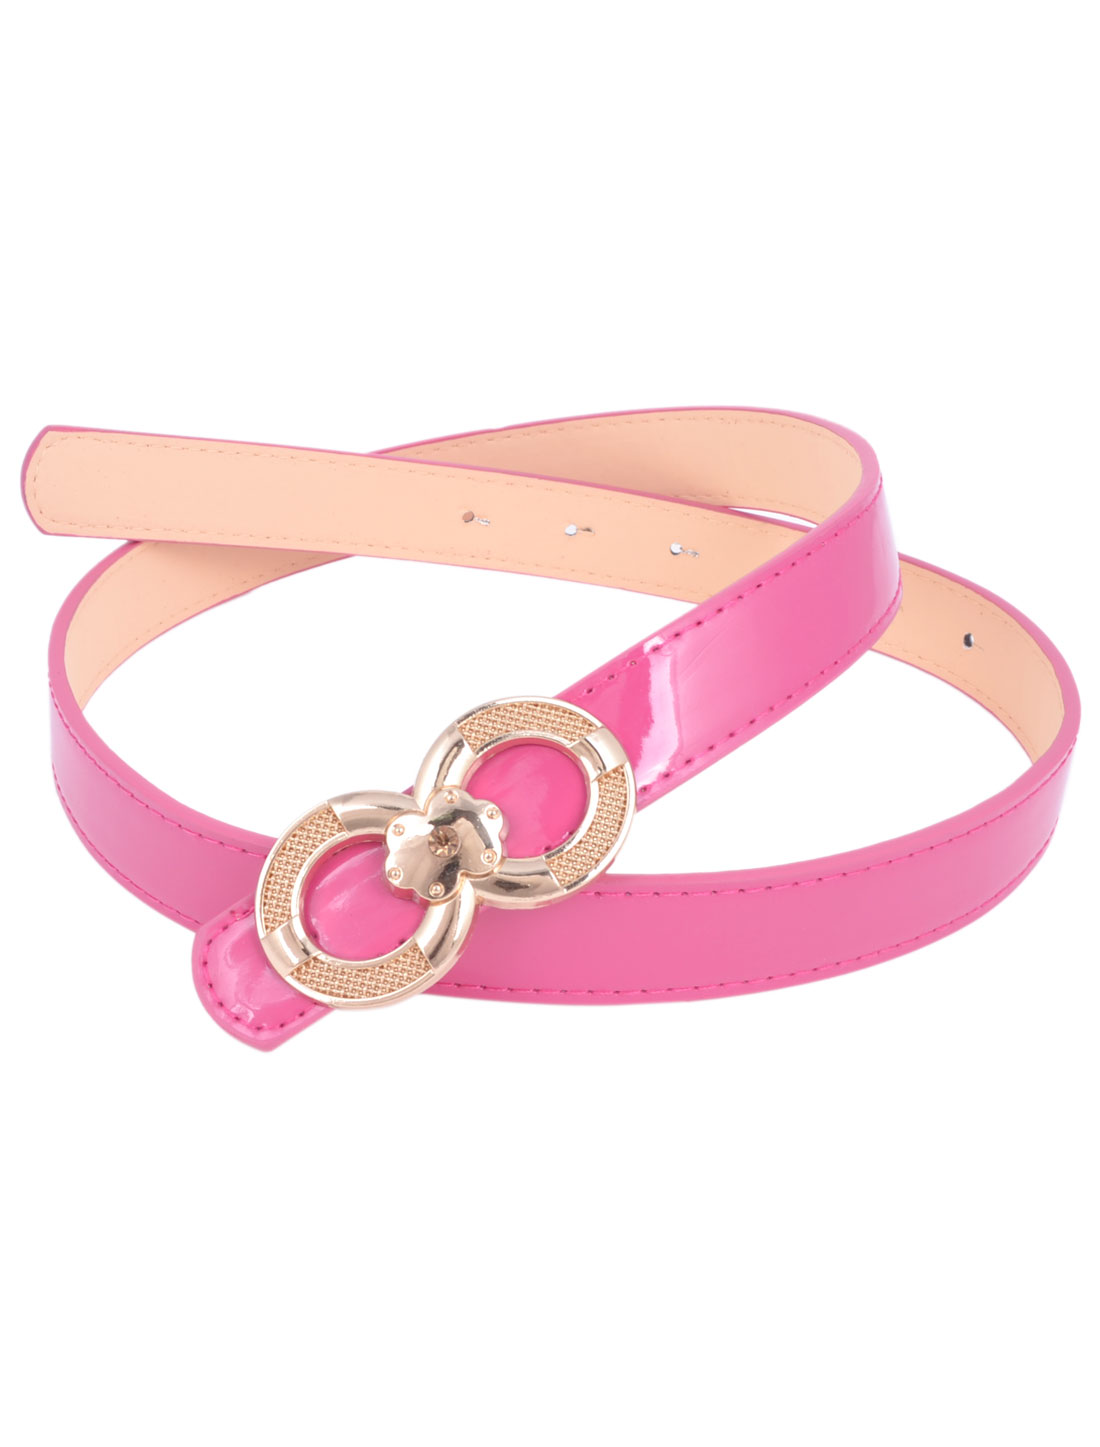 Woman Gold Tone Press Buckle 2.3cm Wide Perforated Patent Leather Belt Fuchsia